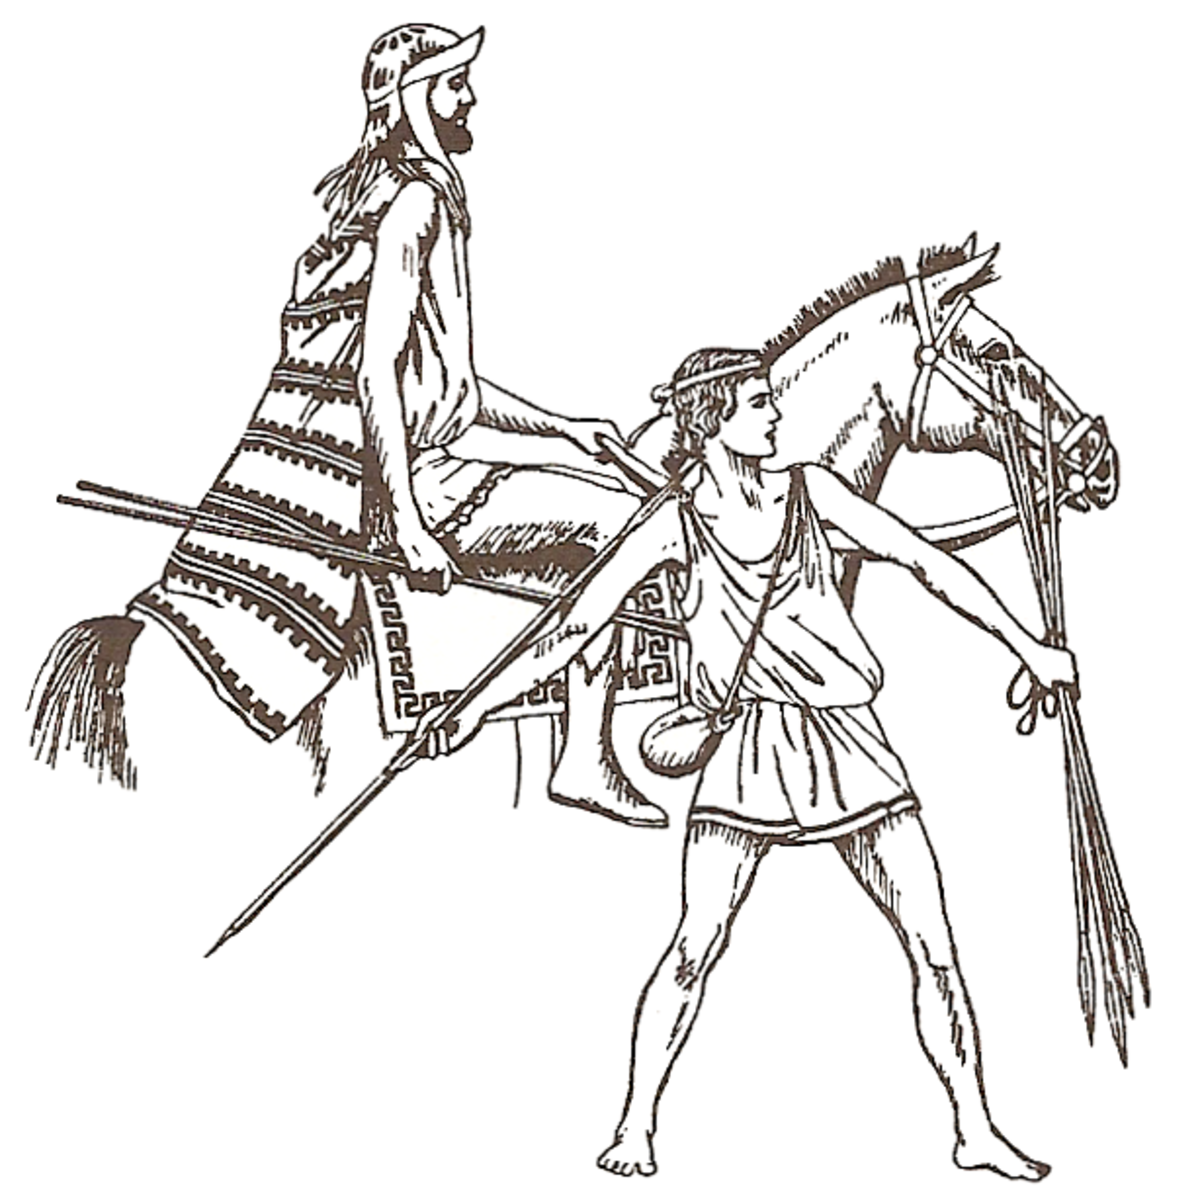 causes-of-greco-persian-wars